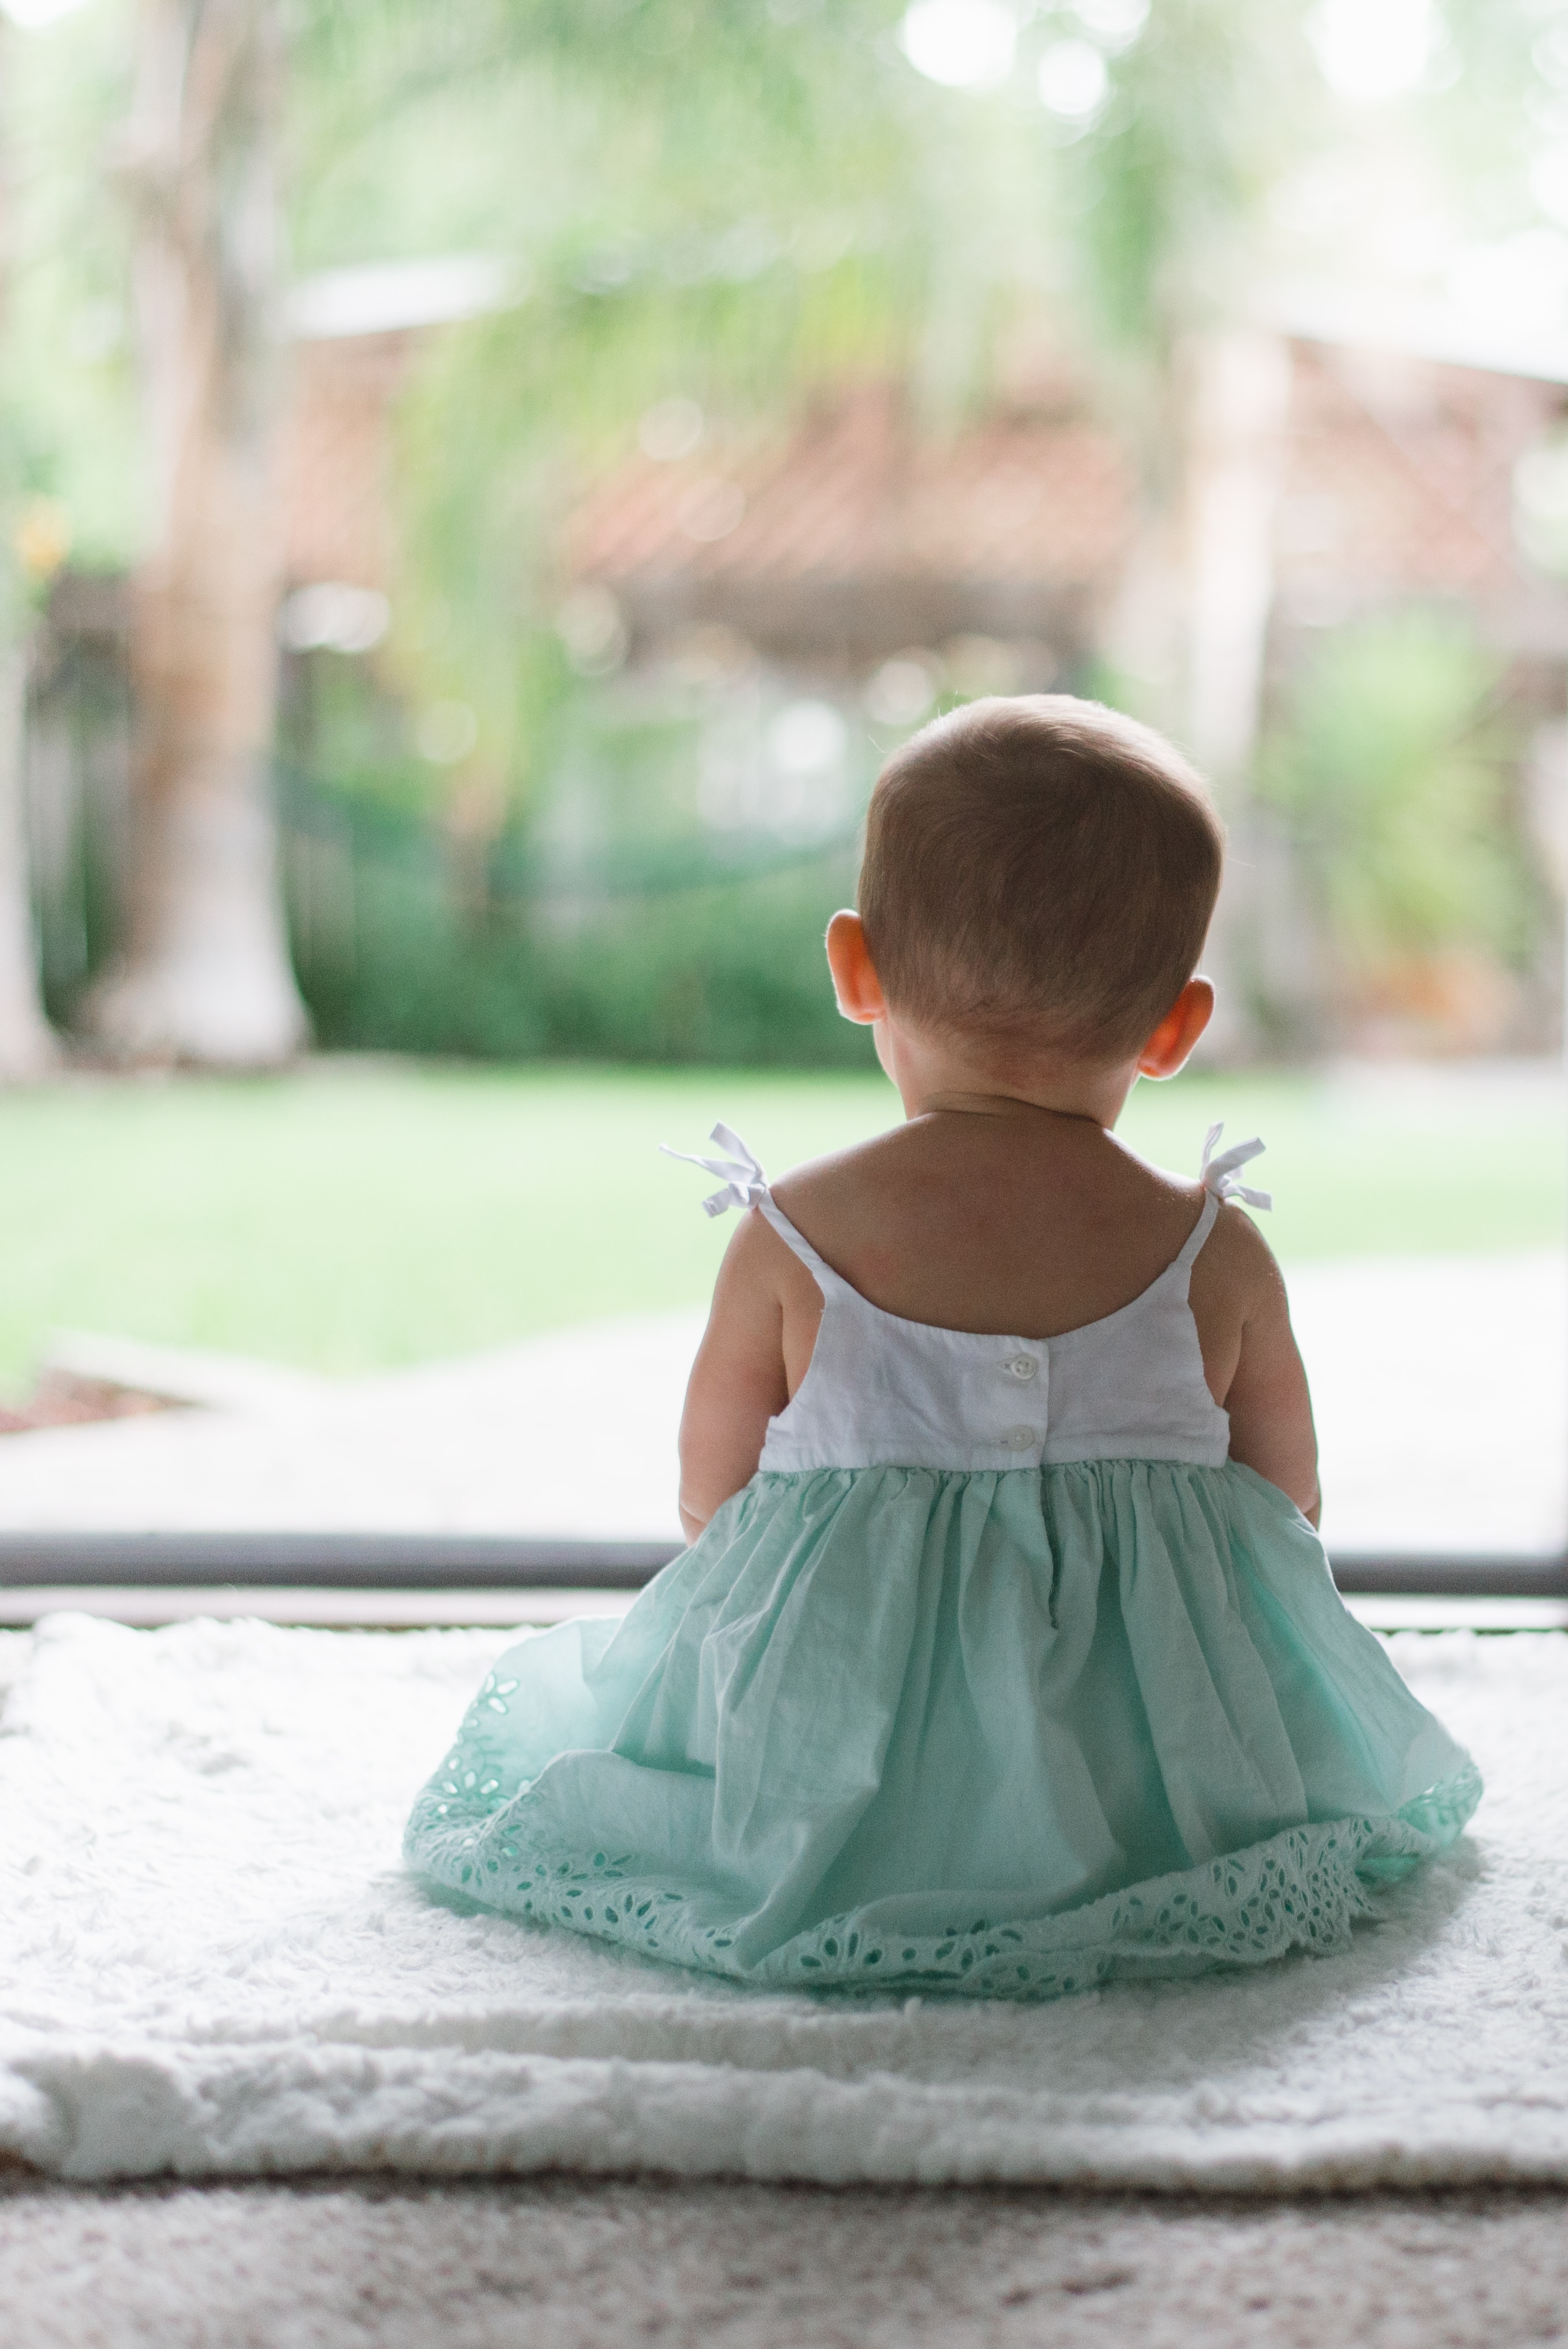 Baby in a dress sits with her back facing camera outside